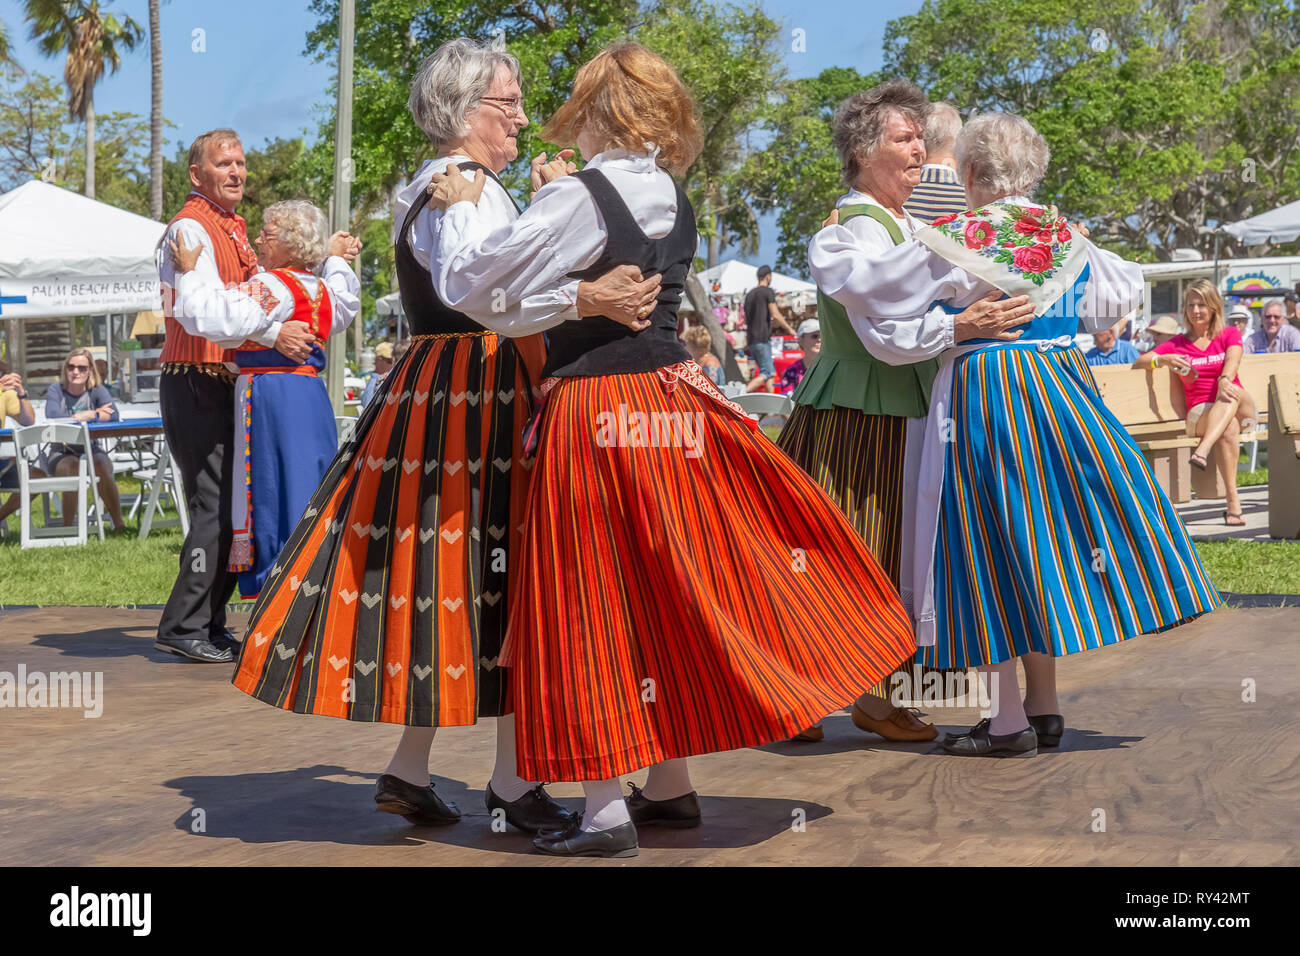 Lake Worth, Florida, USA March 3, 2019,​ Midnight Sun Festival Celebrating Finnish Culture. Women couples are dressed in traditional Finnish clothing. - Stock Image